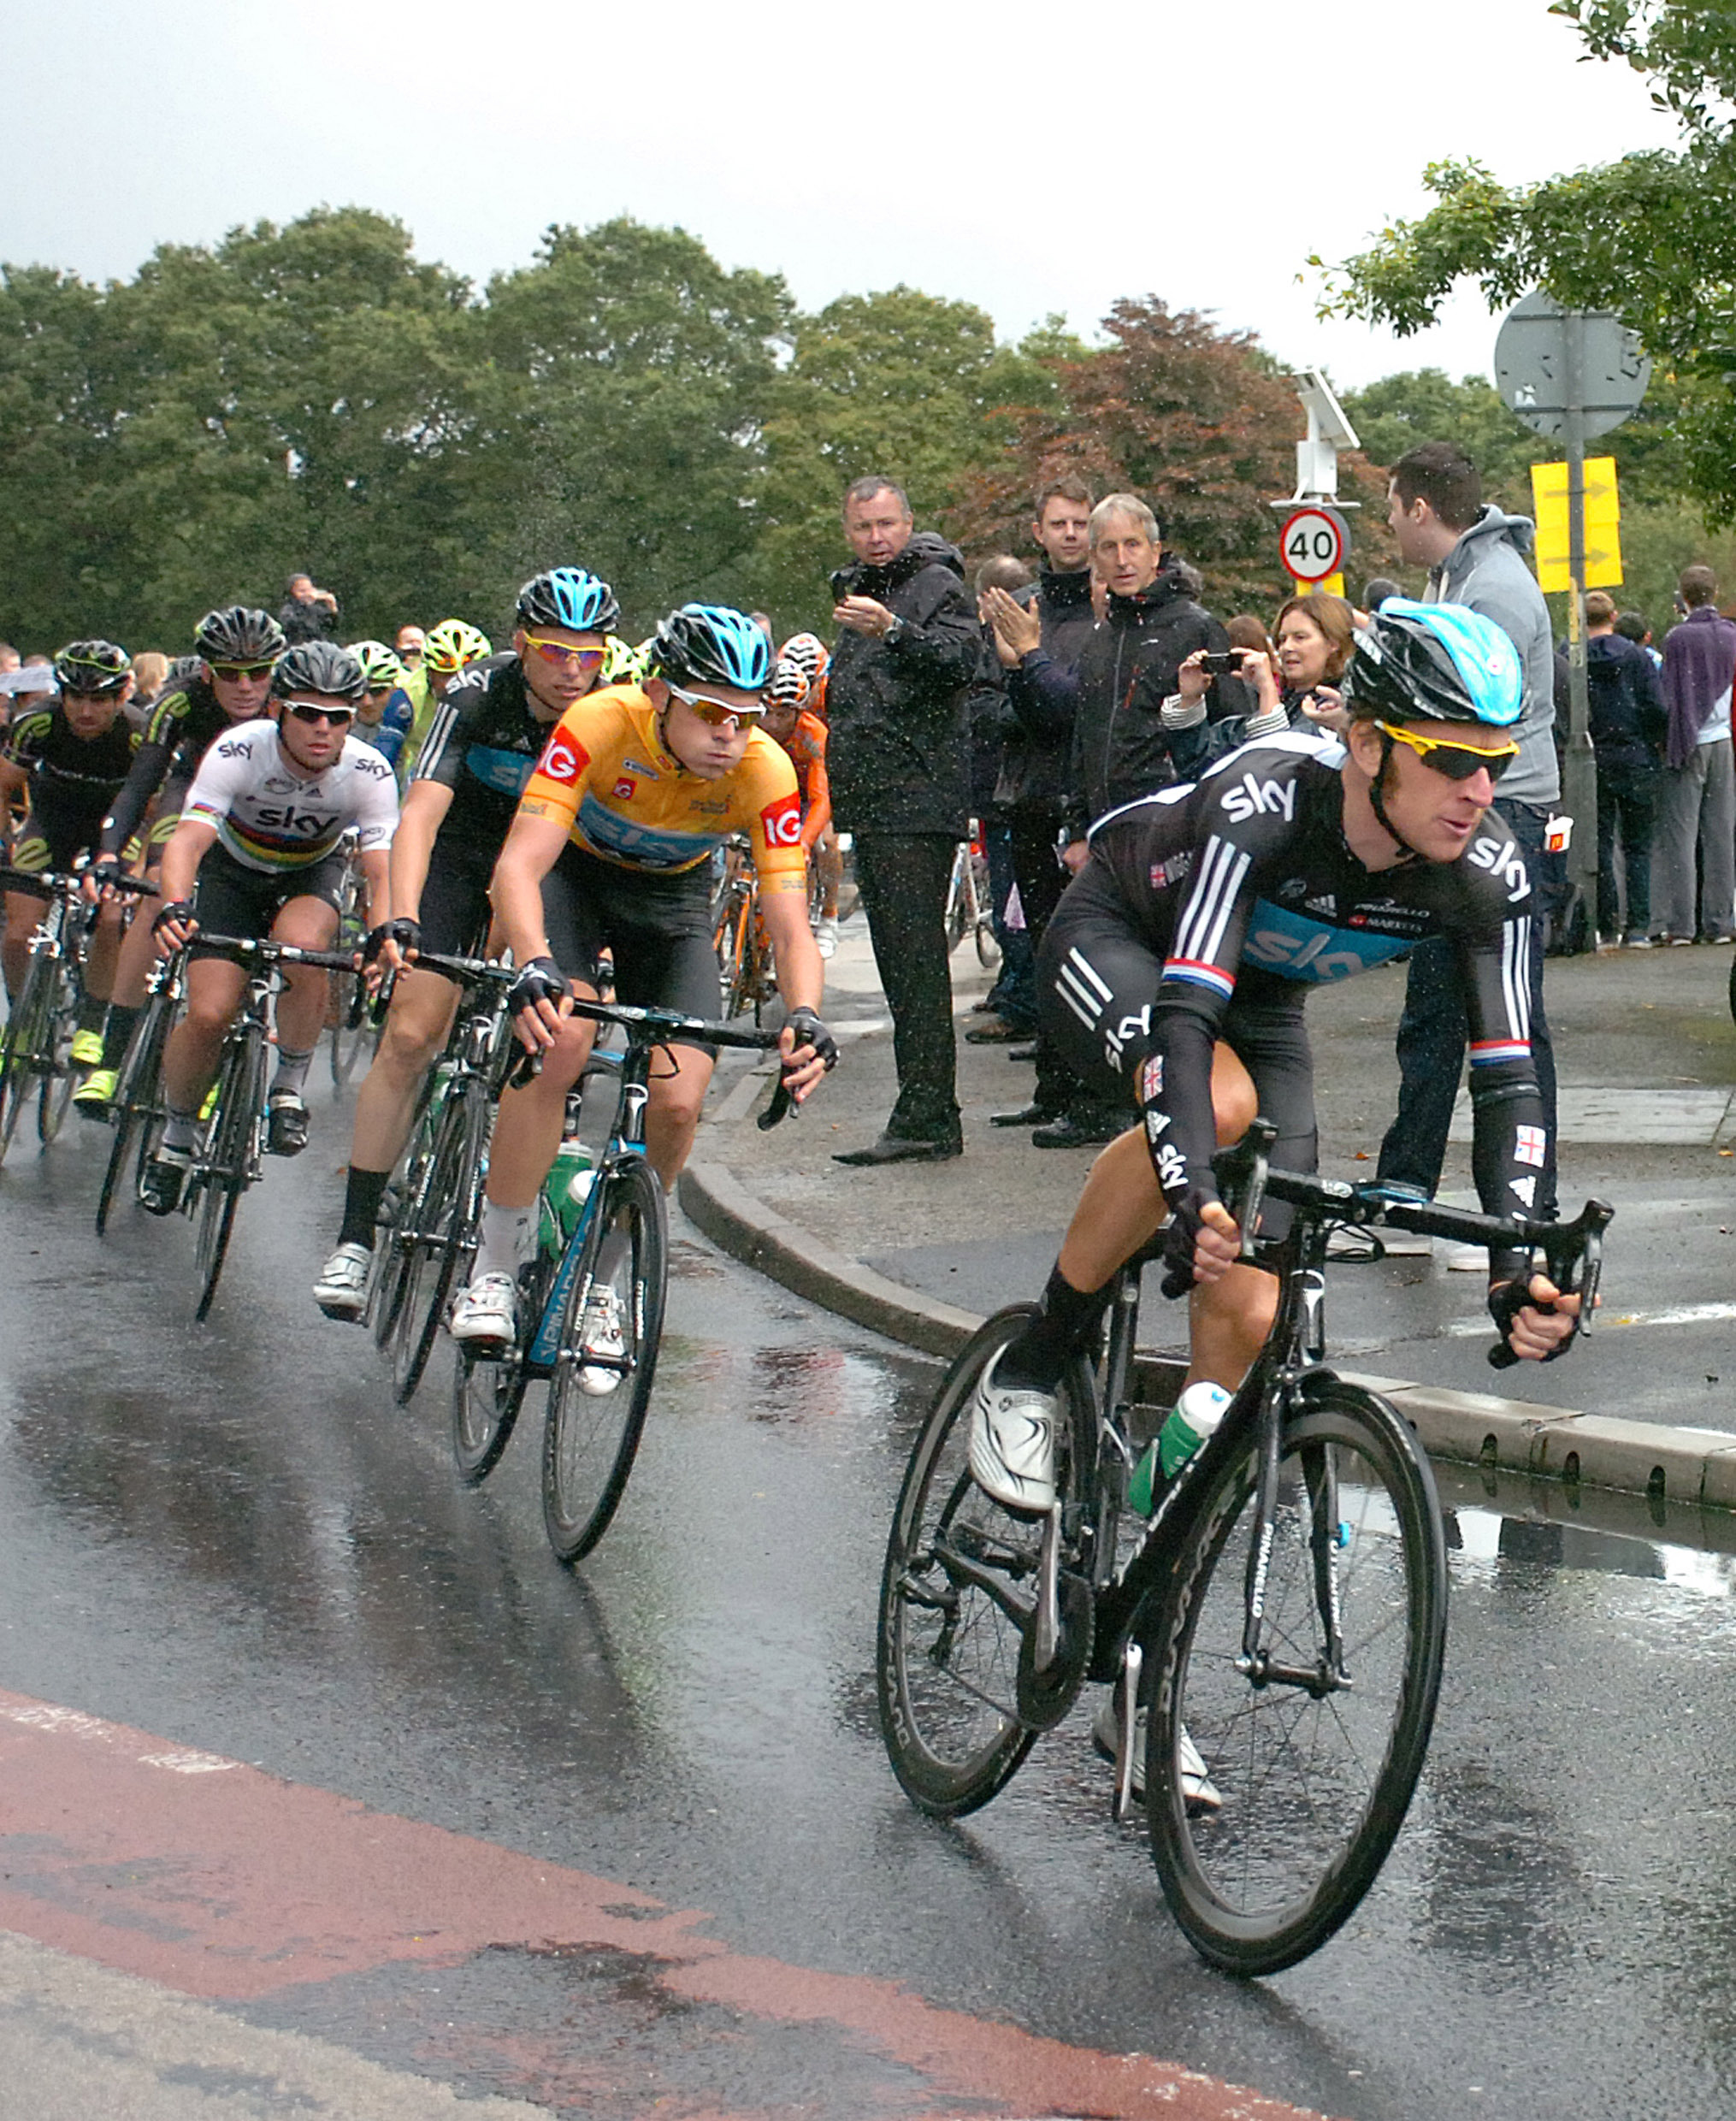 Sir Bradley Wiggins in a previous Tour of Britain